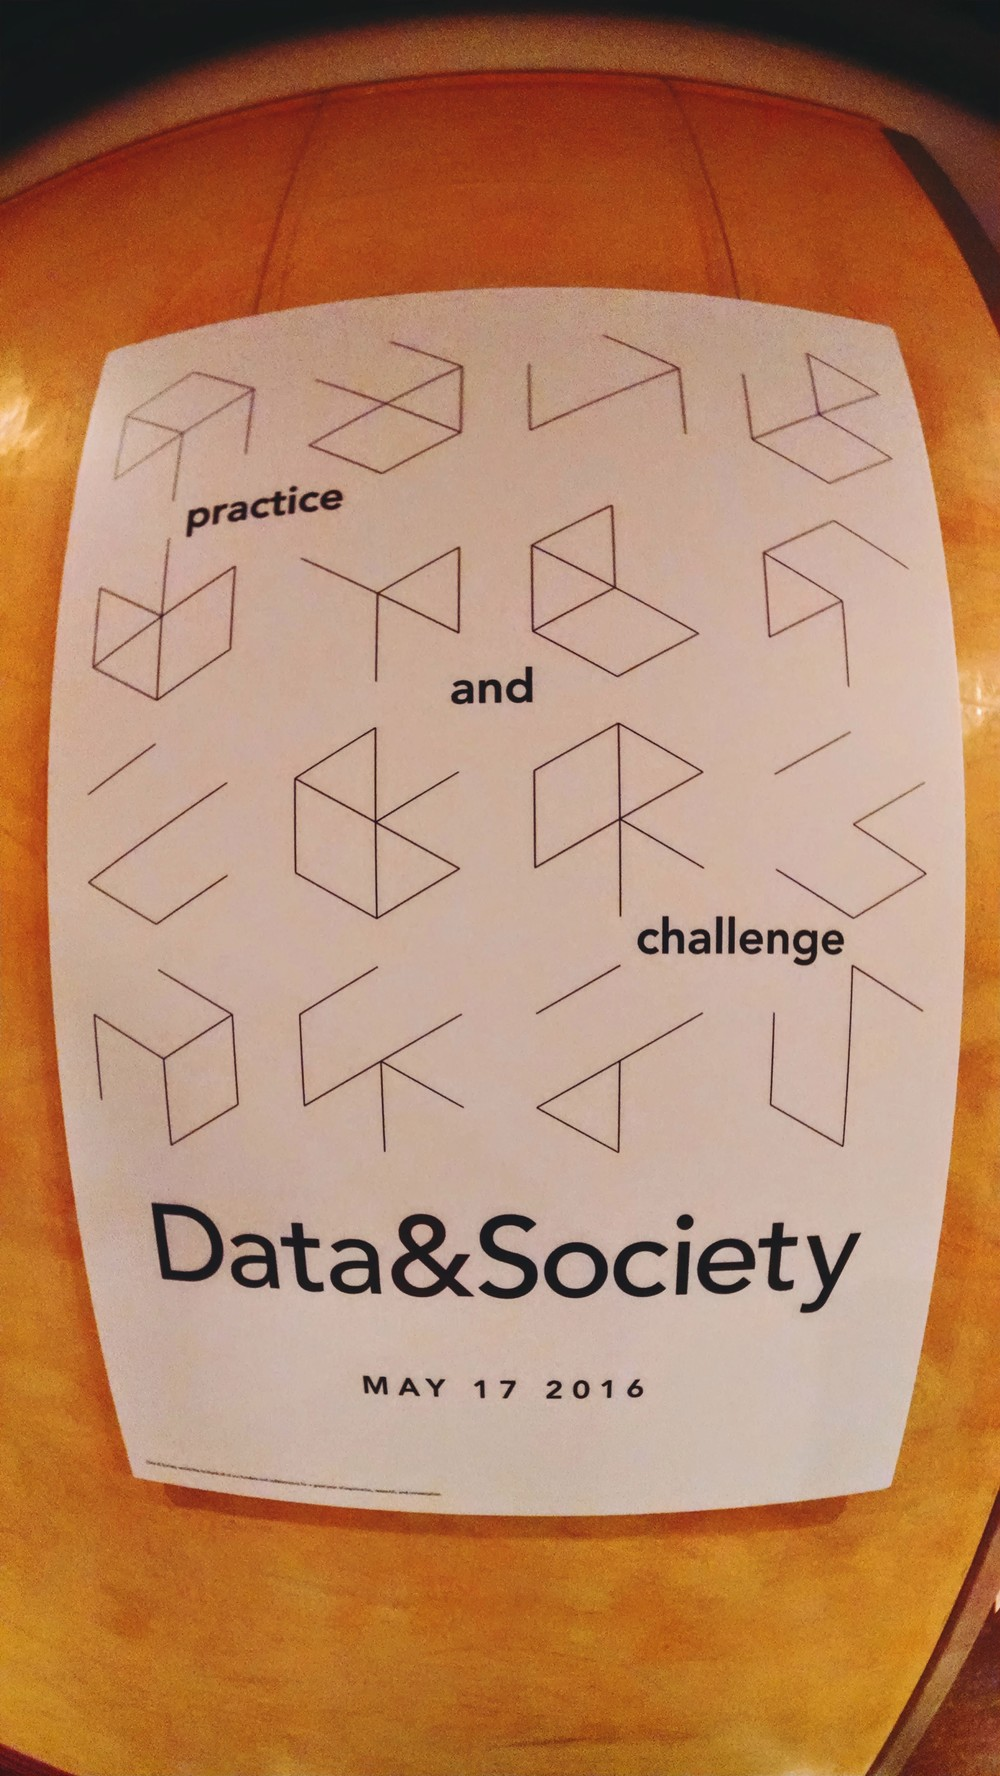 Data & Society Event at HELEN MILLS Event Space and Theater